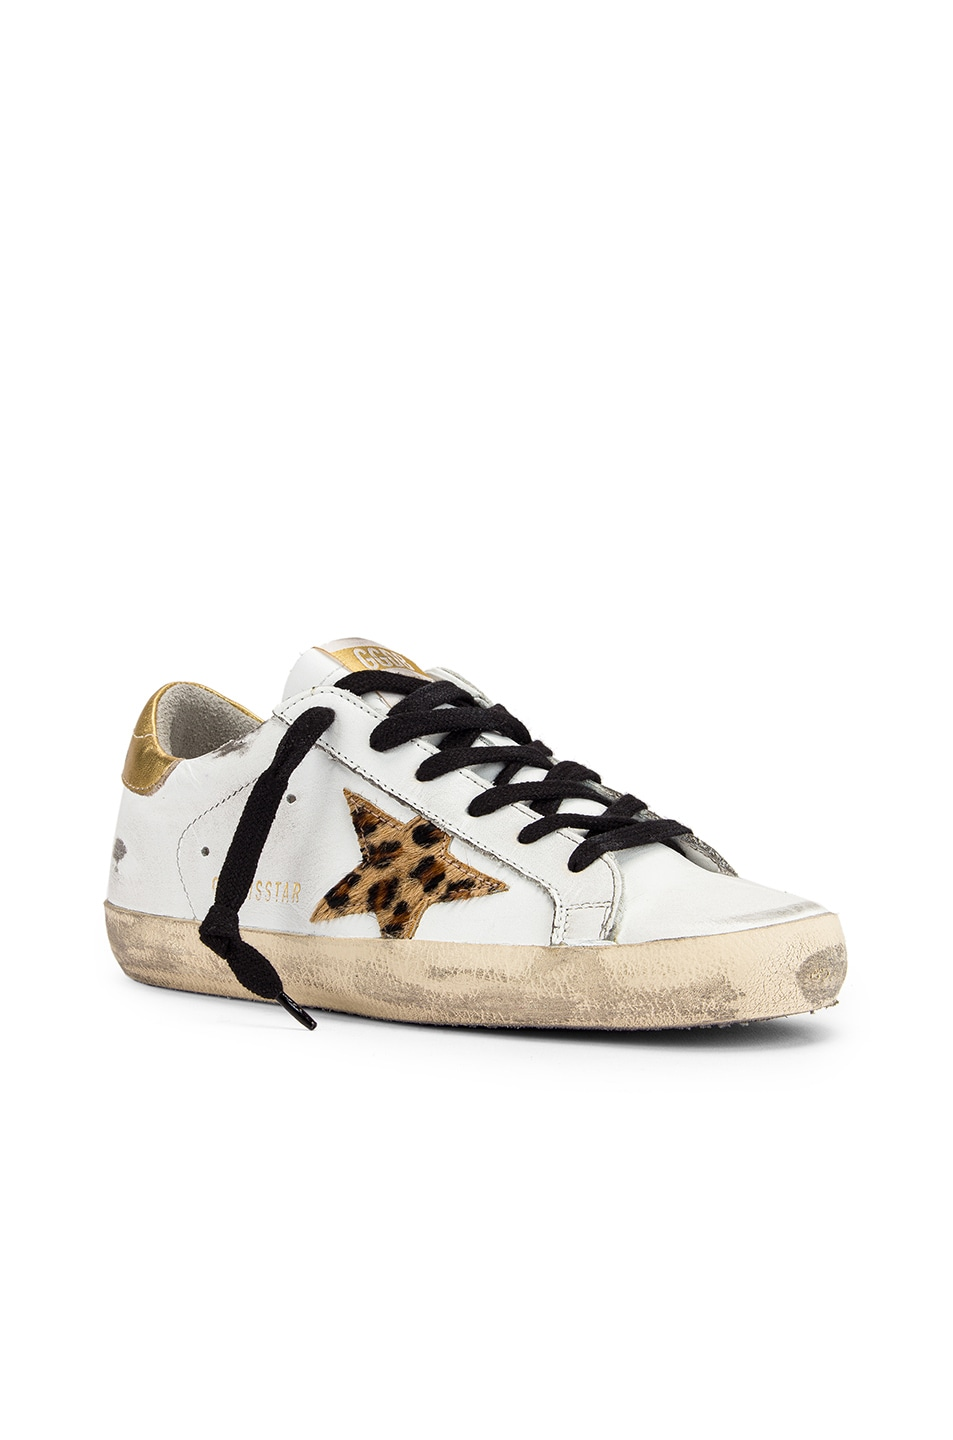 Image 2 of Golden Goose Superstar Sneaker in White Leather, Gold & Leopard